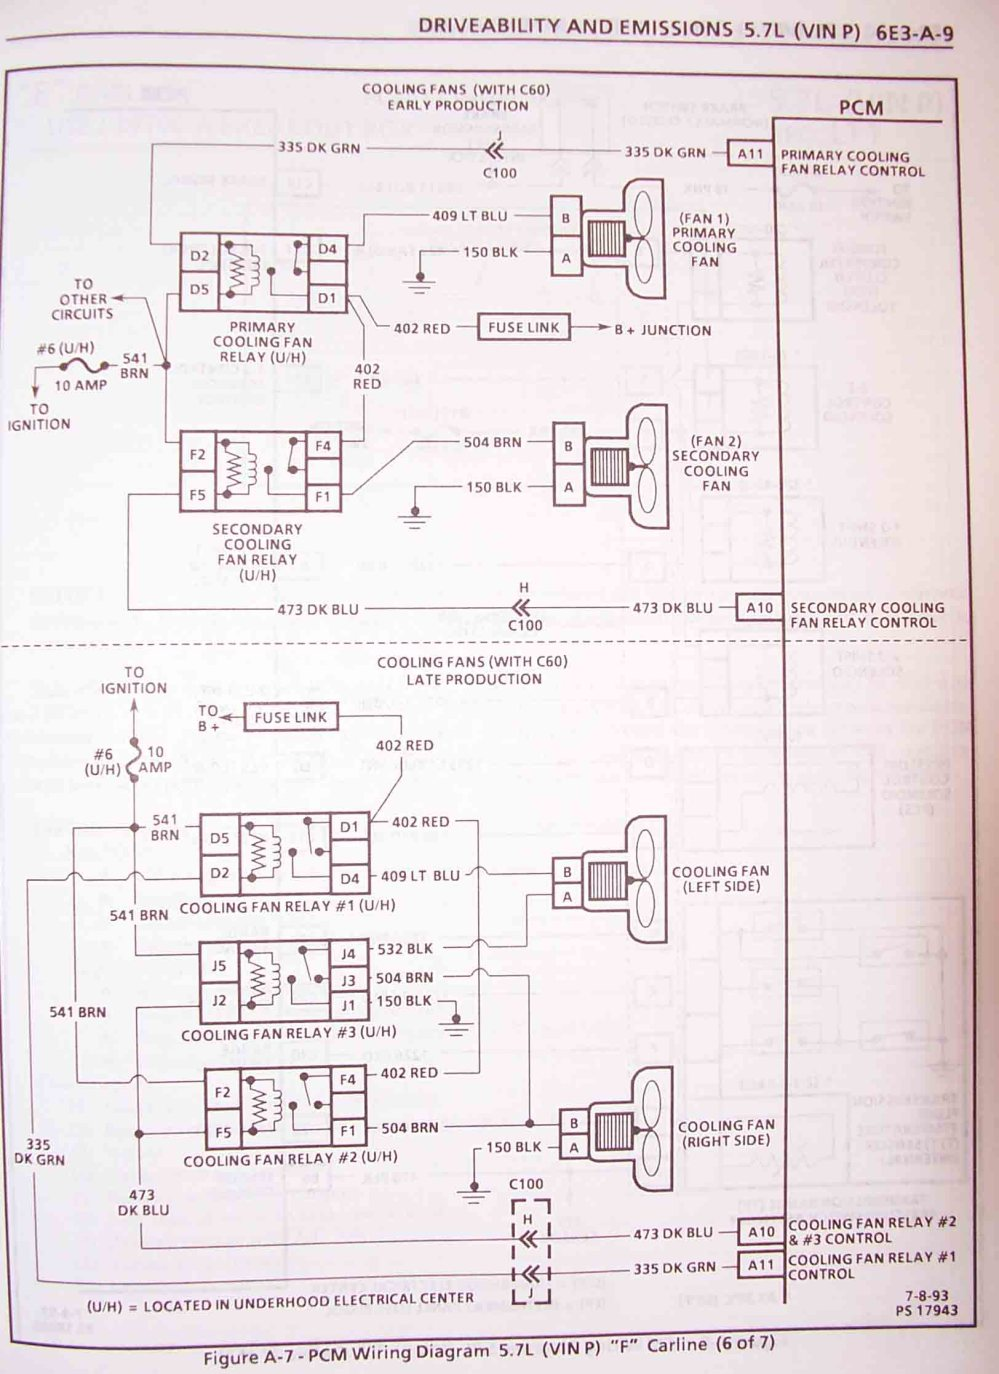 medium resolution of 1995 f body wire harness schematics lt1 fan wiring schematic